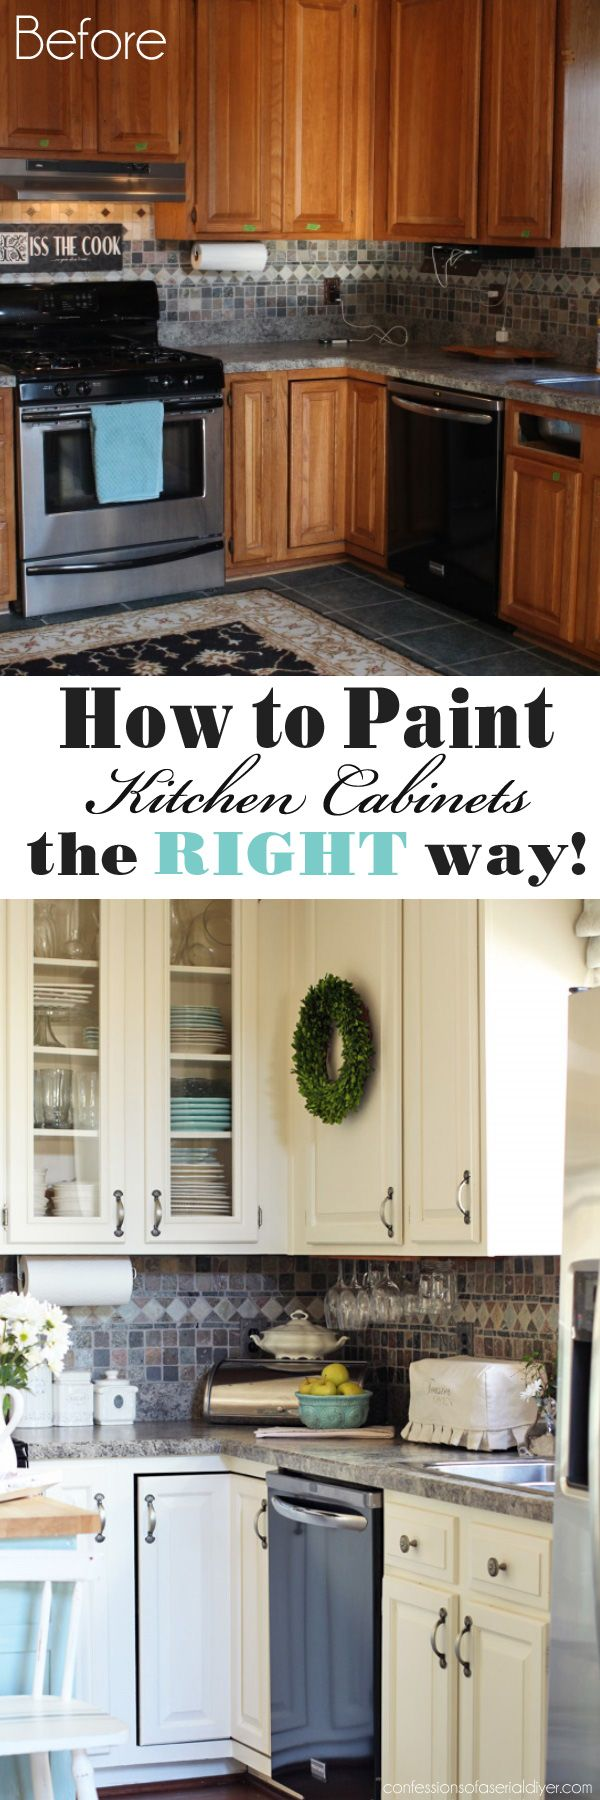 kitchen cabinet updates How to Paint Kitchen Cabinets the RIGHT way from Confessions of a Serial Do it